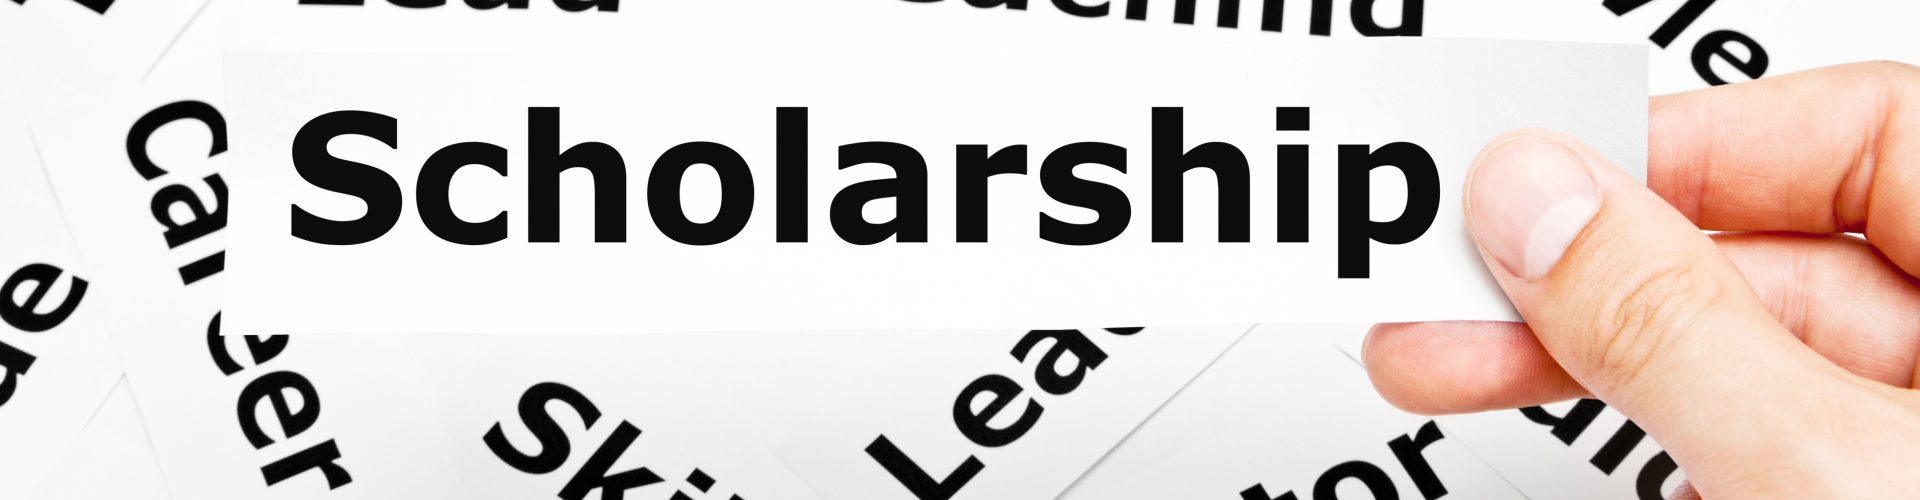 Hand holding a piece of paper with the word Scholarship printed on it above other related words in the background.